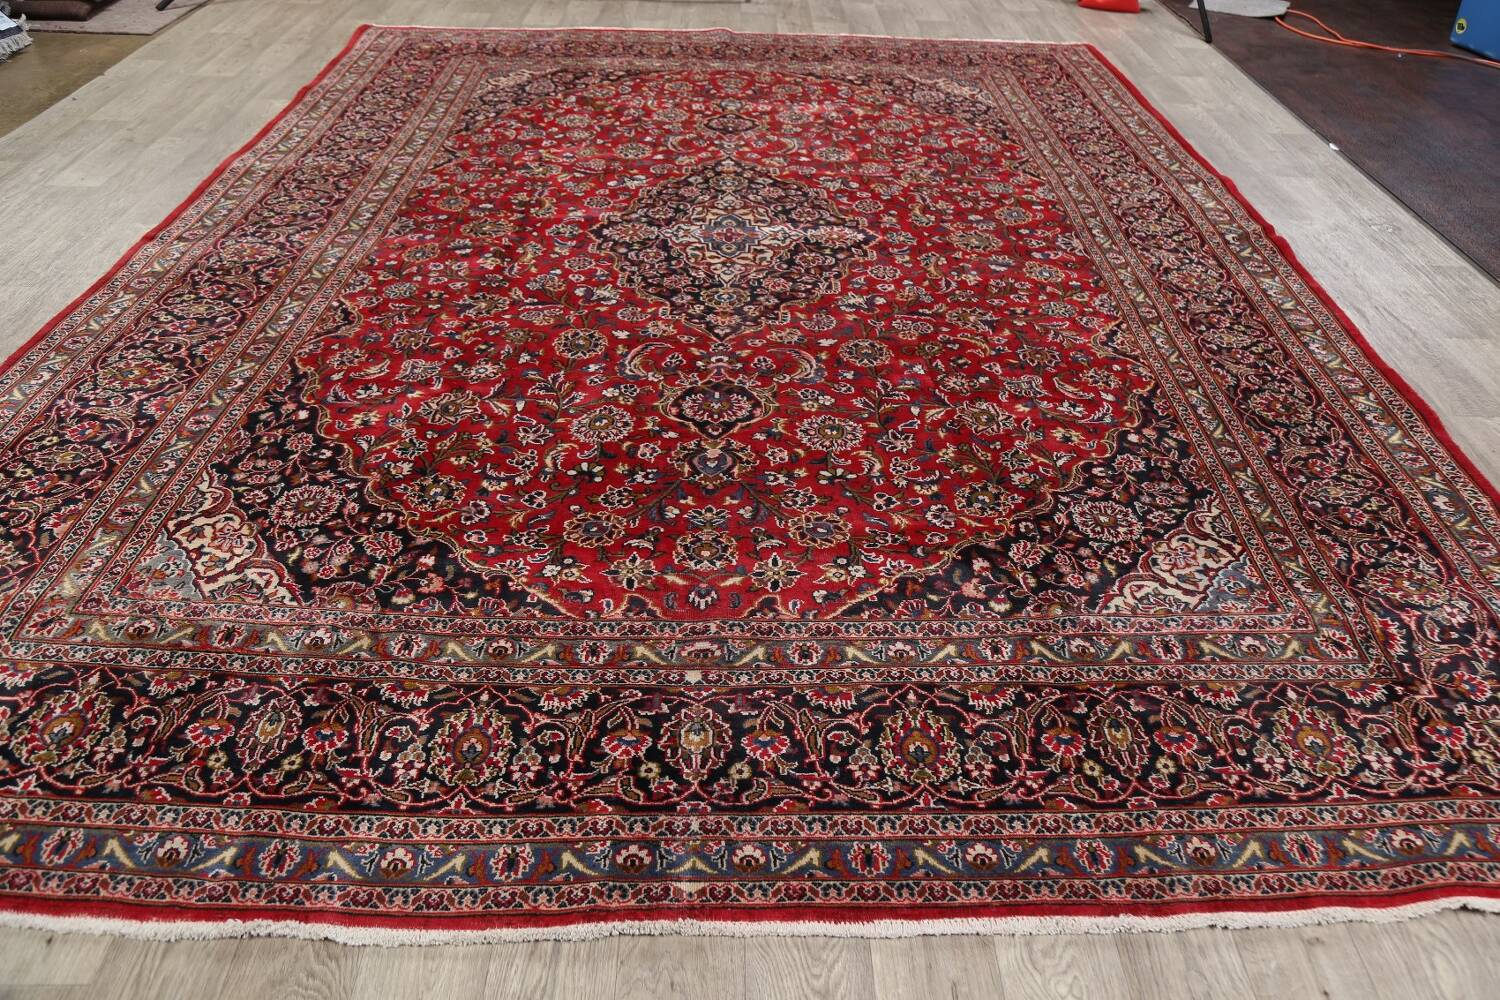 Vintage Floral Mashad Persian Red Area Rug 9x13 image 21